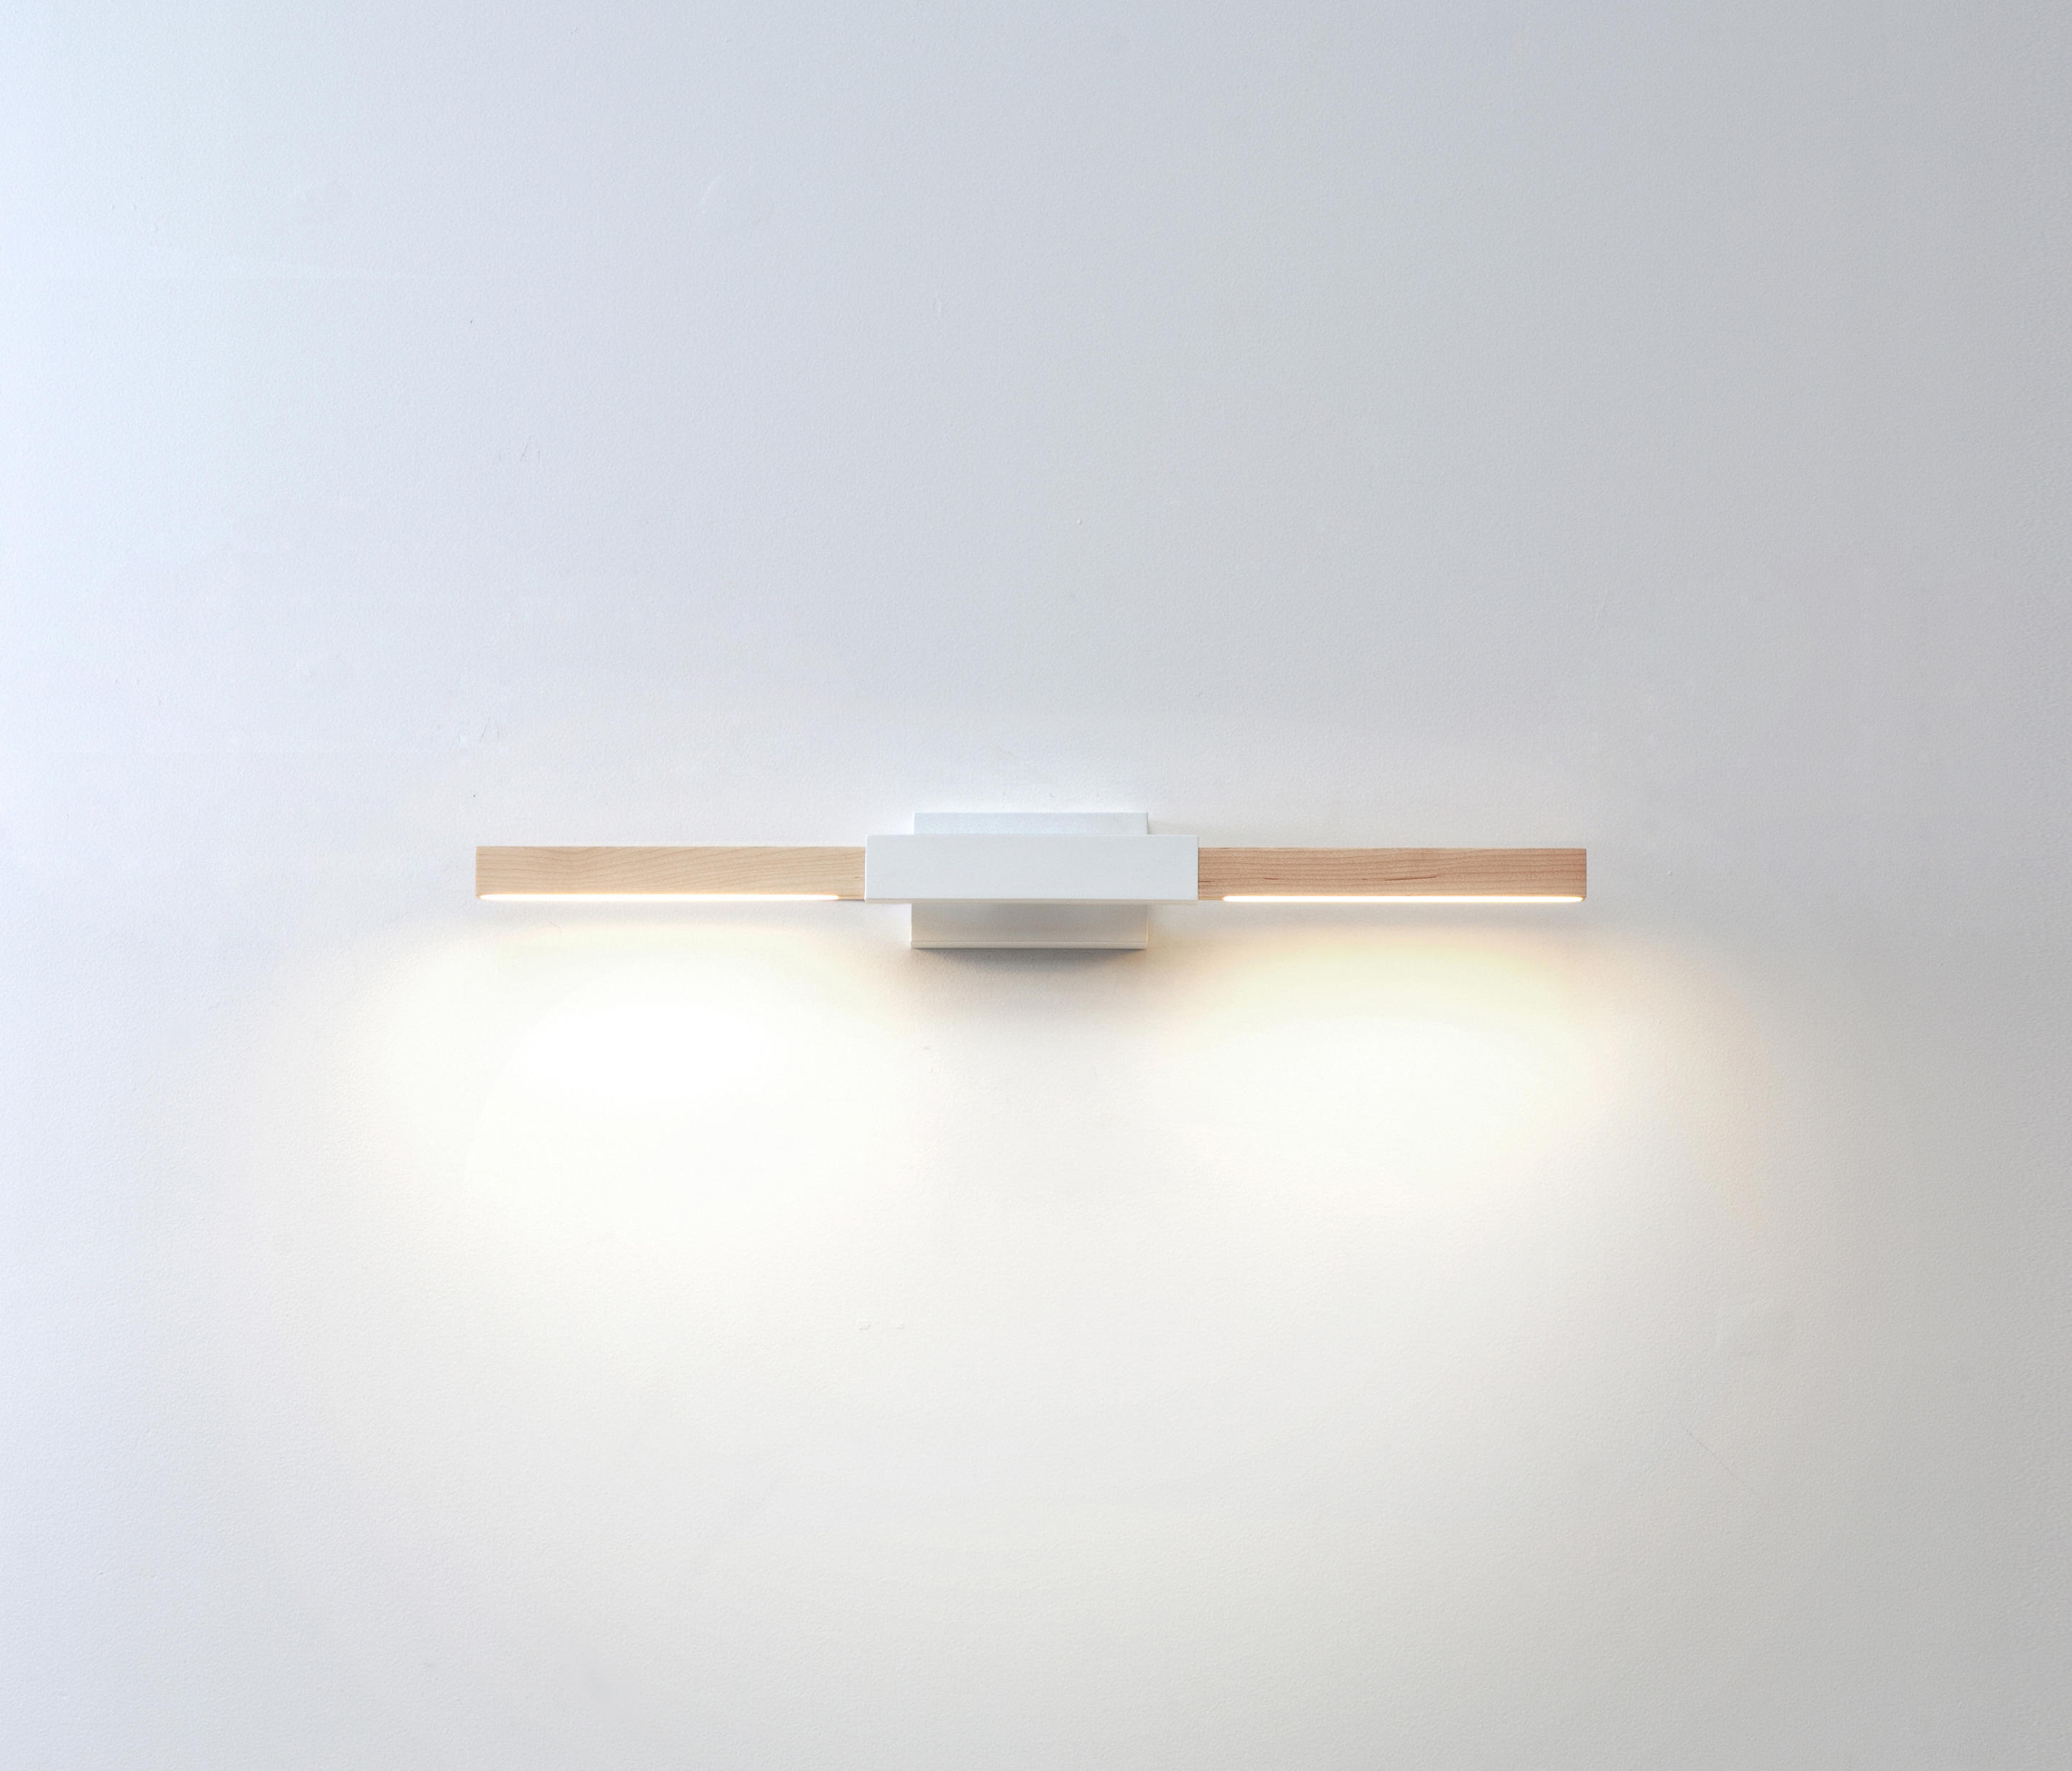 2 Ft Horizontal Sconce Wall Lights From Stickbulb Architonic